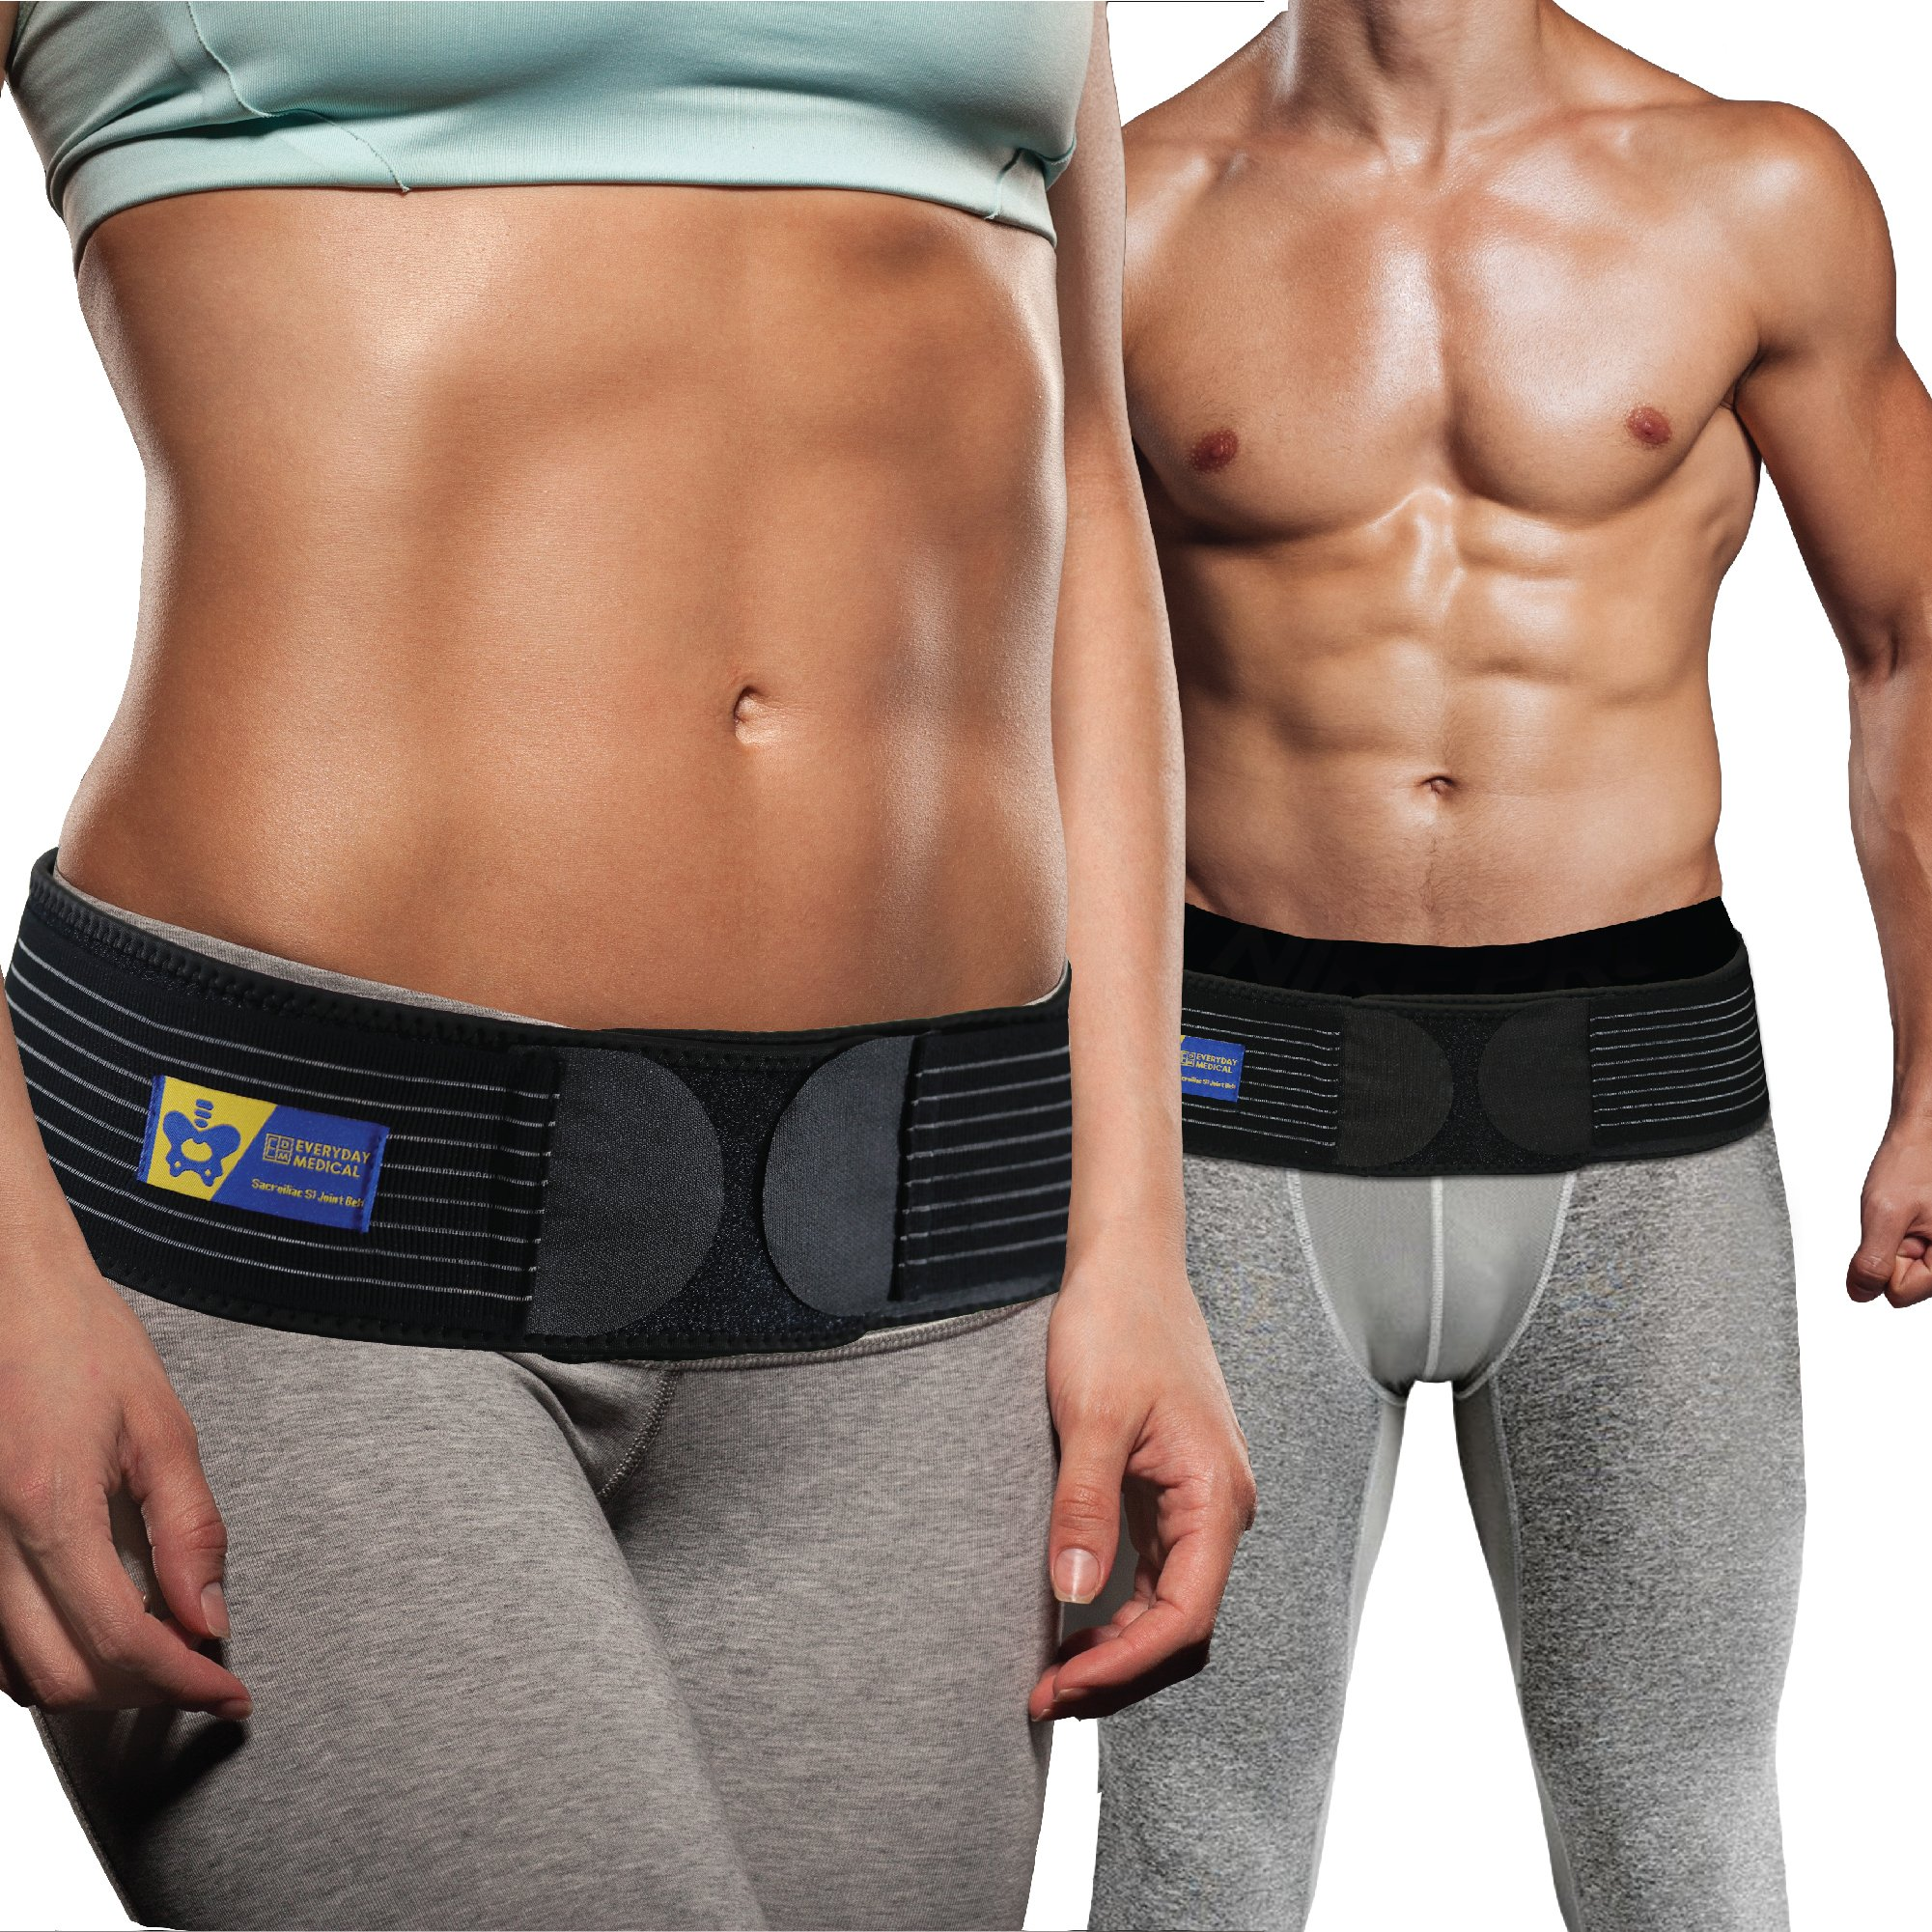 Everyday Medical Sacroiliac Belt - Breathable, Anti-Slip Si Joint Brace For Men and Women - Eases Sciatica, Hip, Pelvic, Lumbar and Leg Pain-Reduces Inflammation by Stabilizing SI Joint - S/M (30-42'')